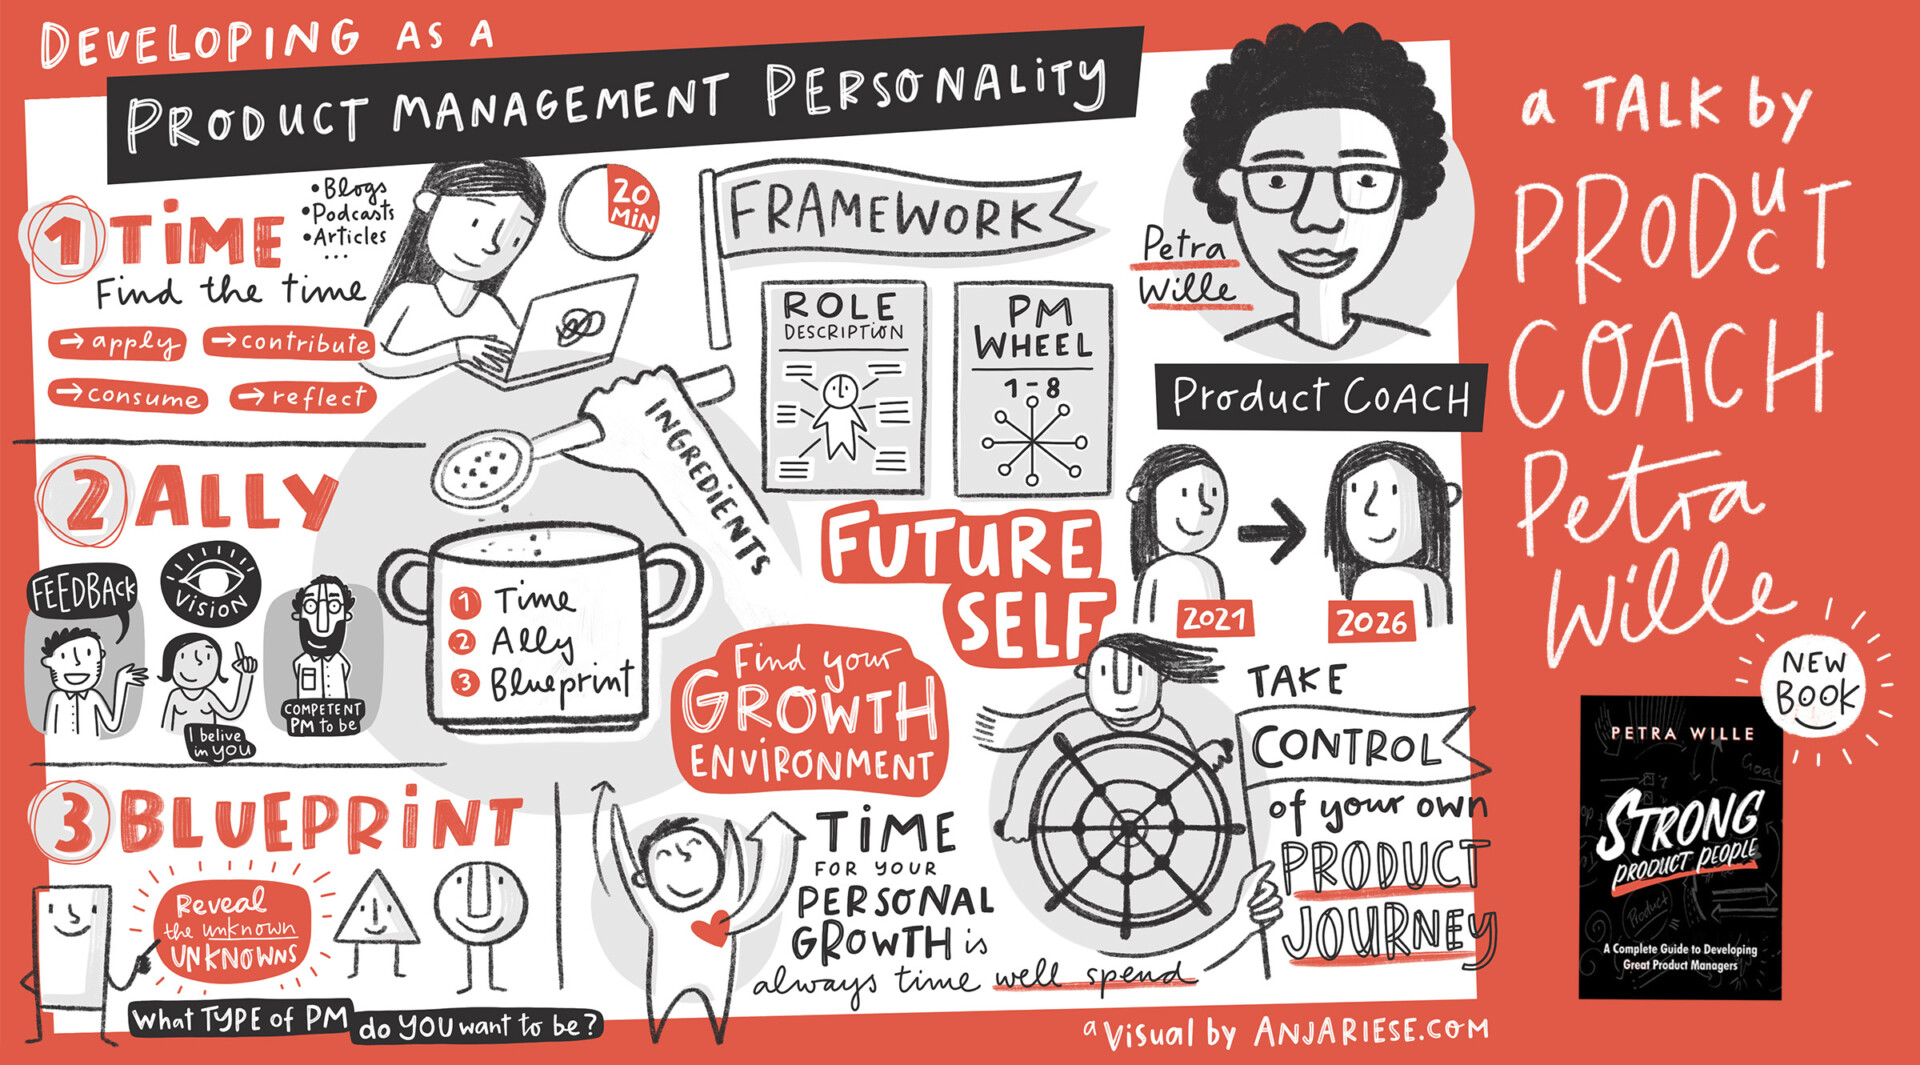 Developing as a product management personality